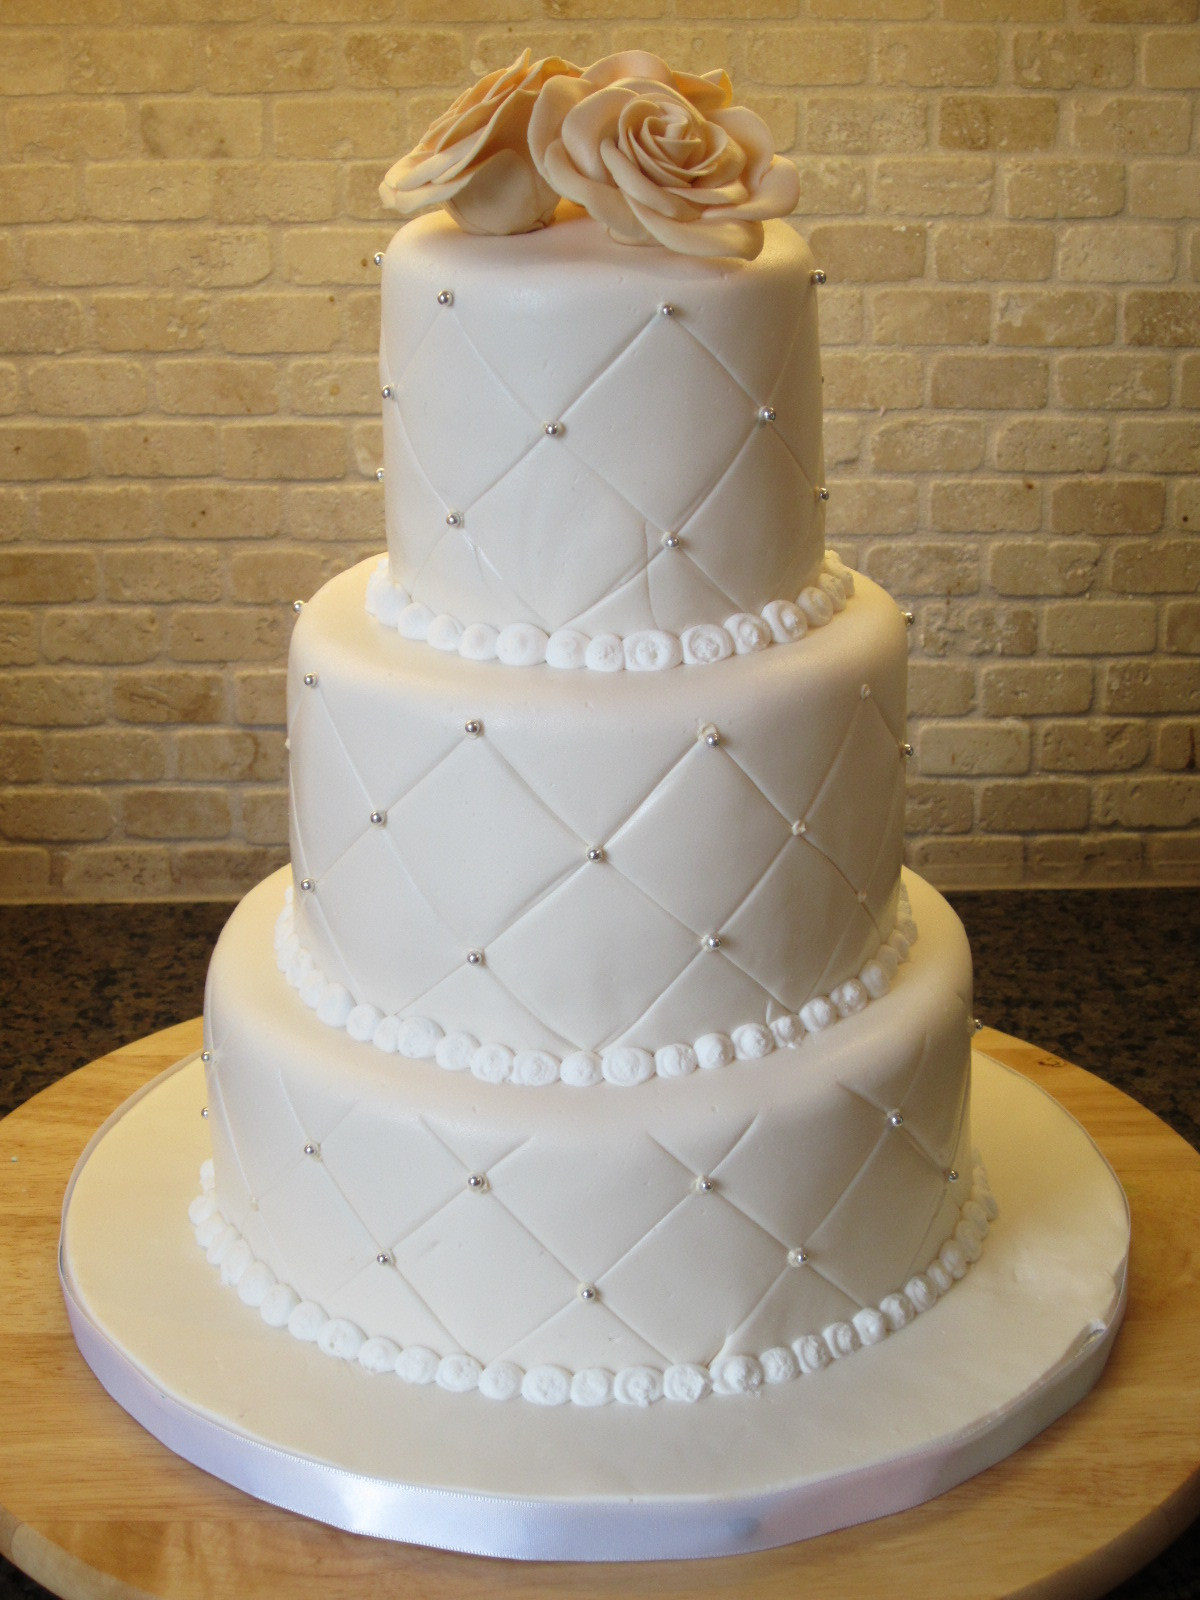 Wedding Cakes Houston Prices 20 Of the Best Ideas for Wedding Cakes Houston Tx Get Affordable Cheap Priced